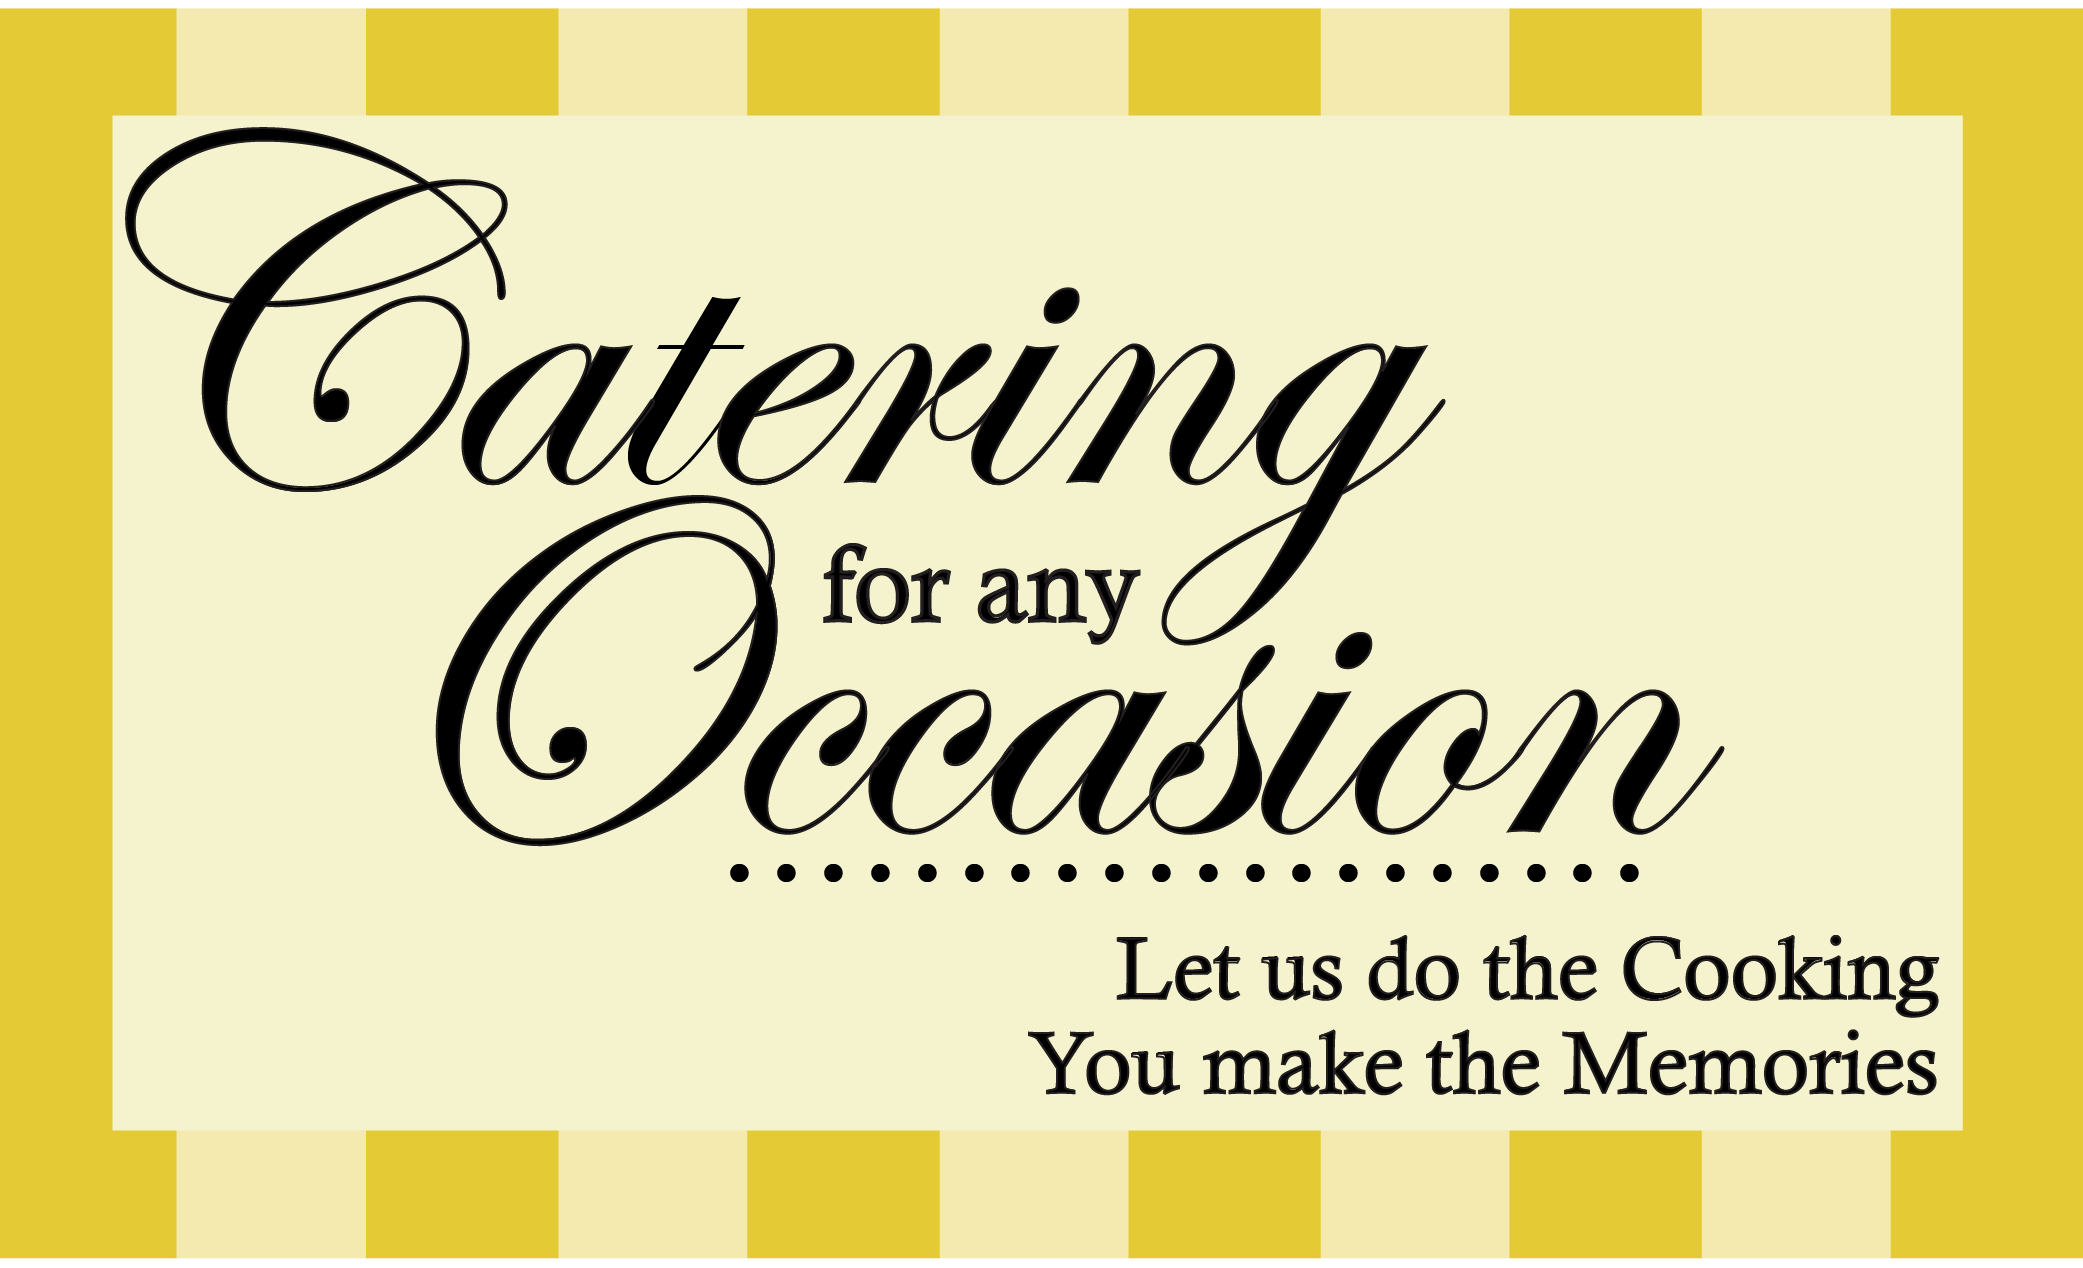 Two Saucy Broads Catering in Fullerton